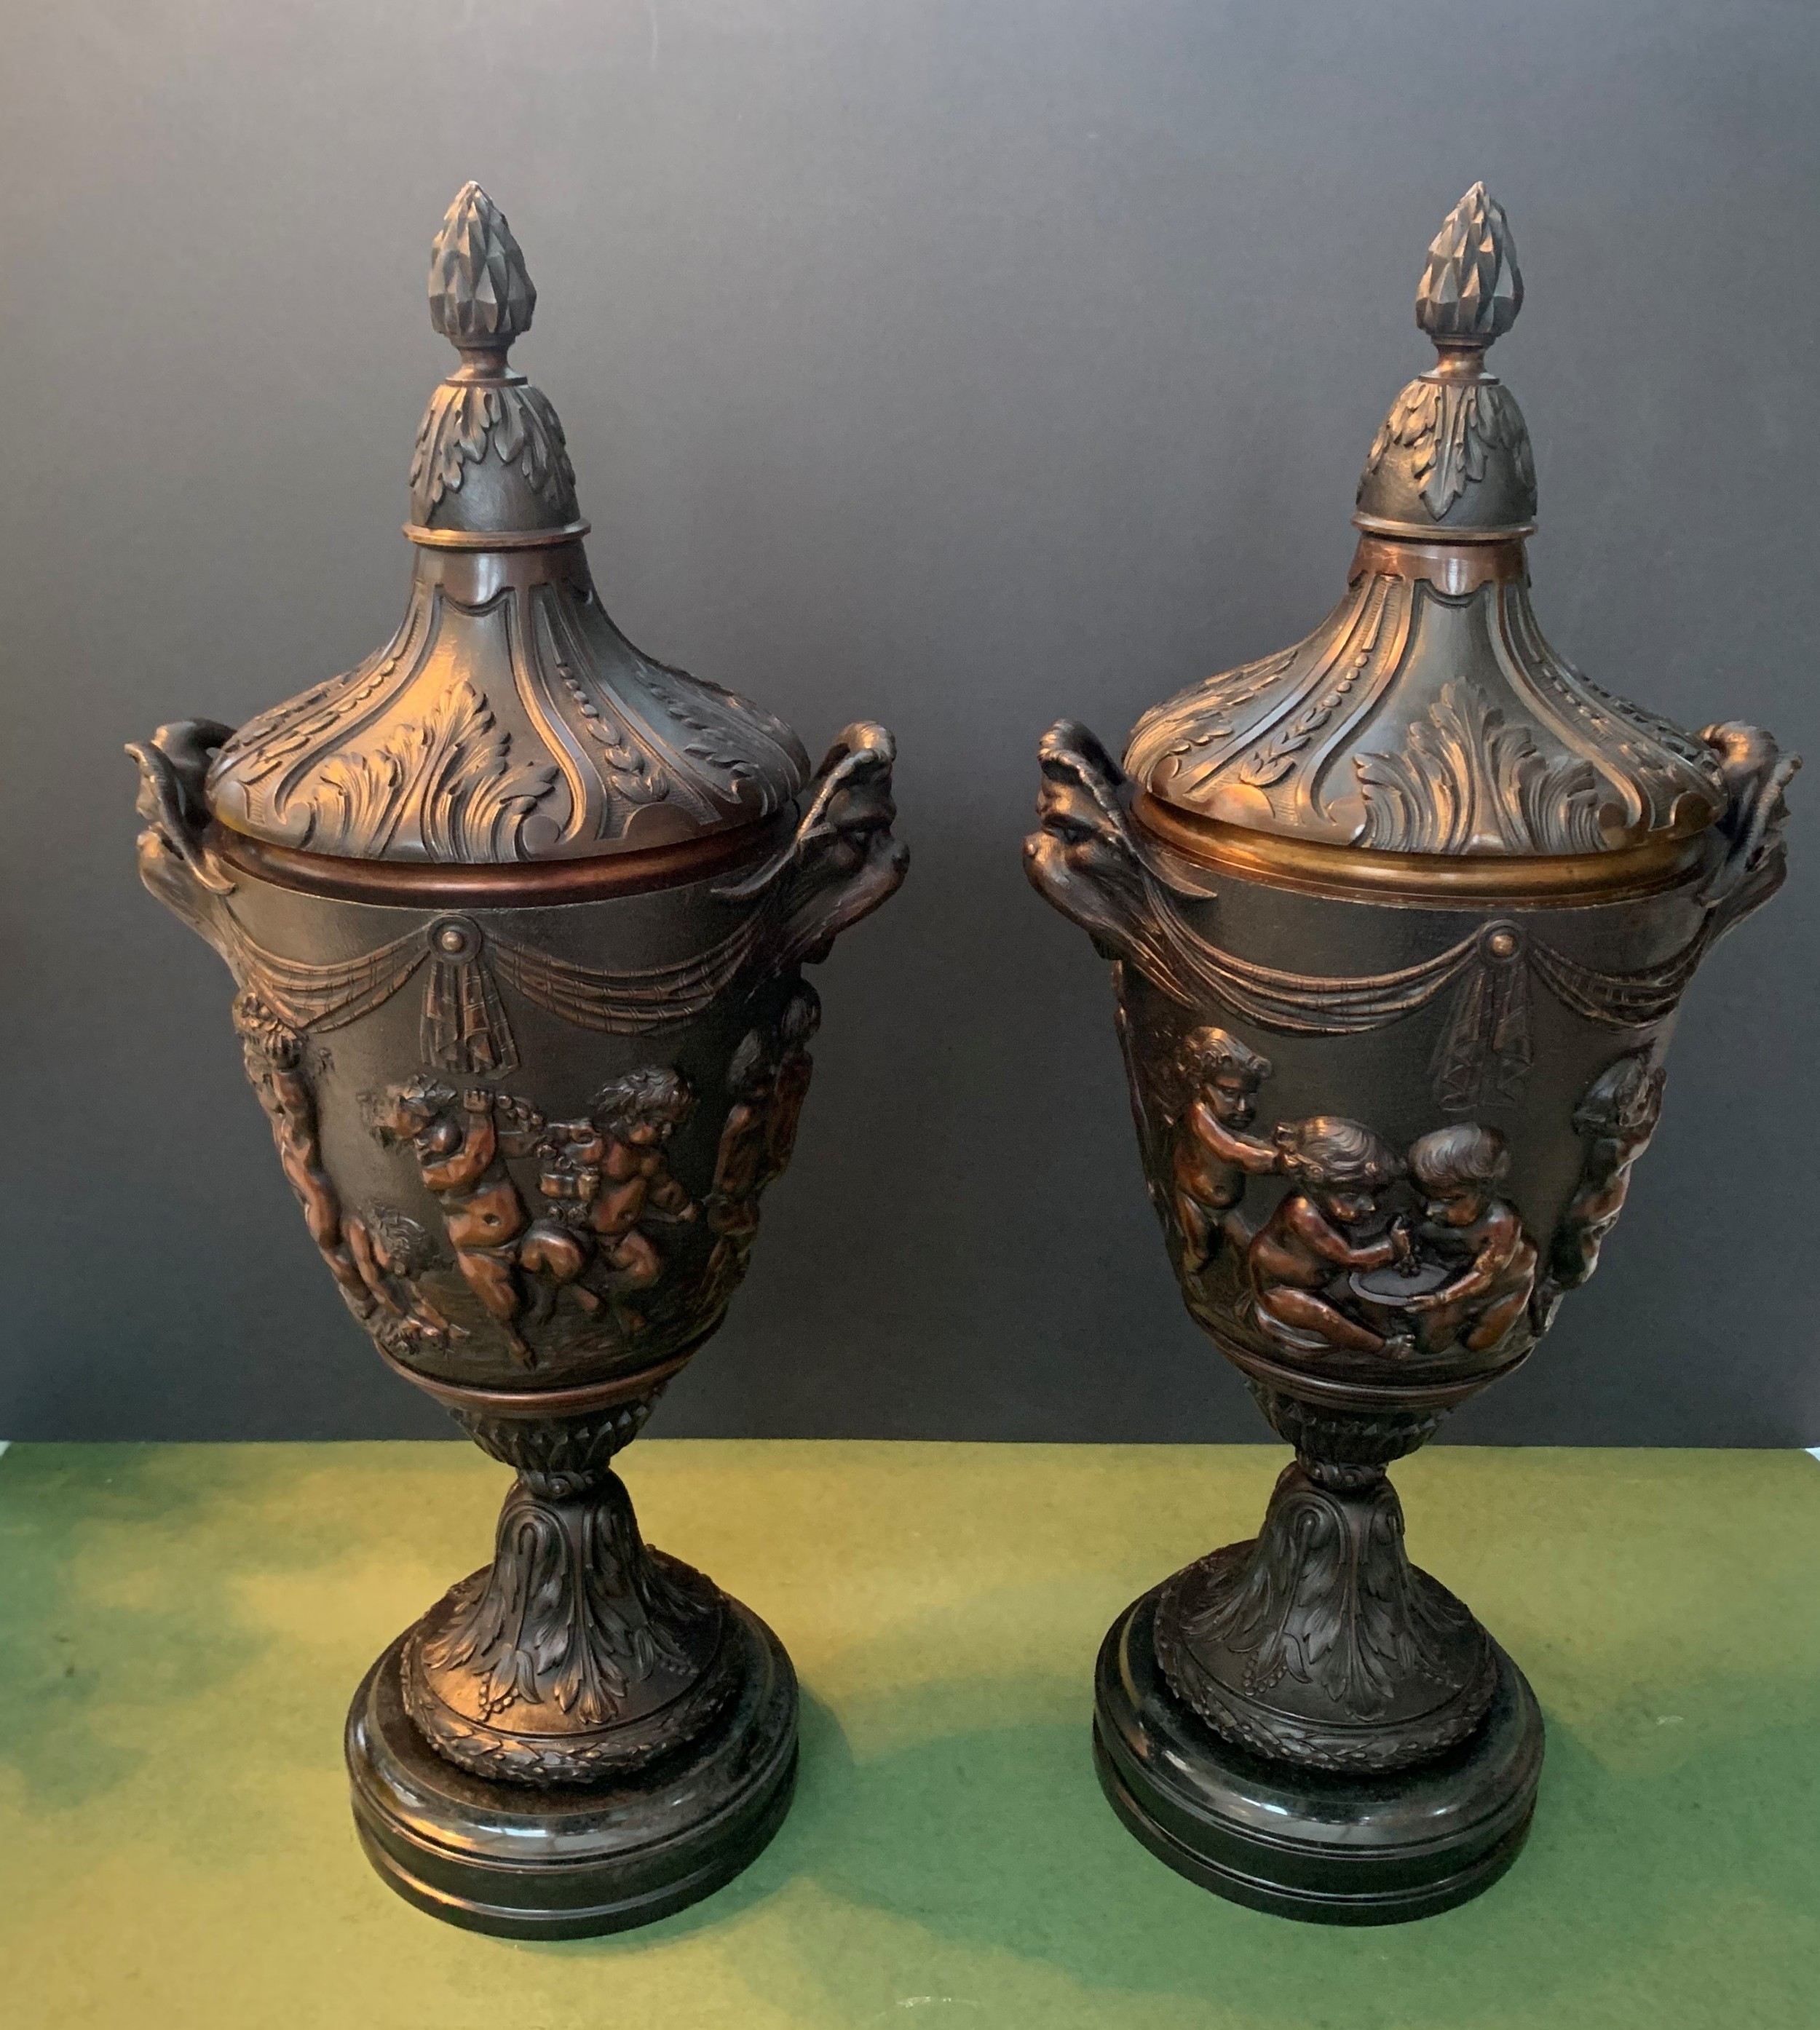 pair of finely cast late 19th century french lidded urns after clodion